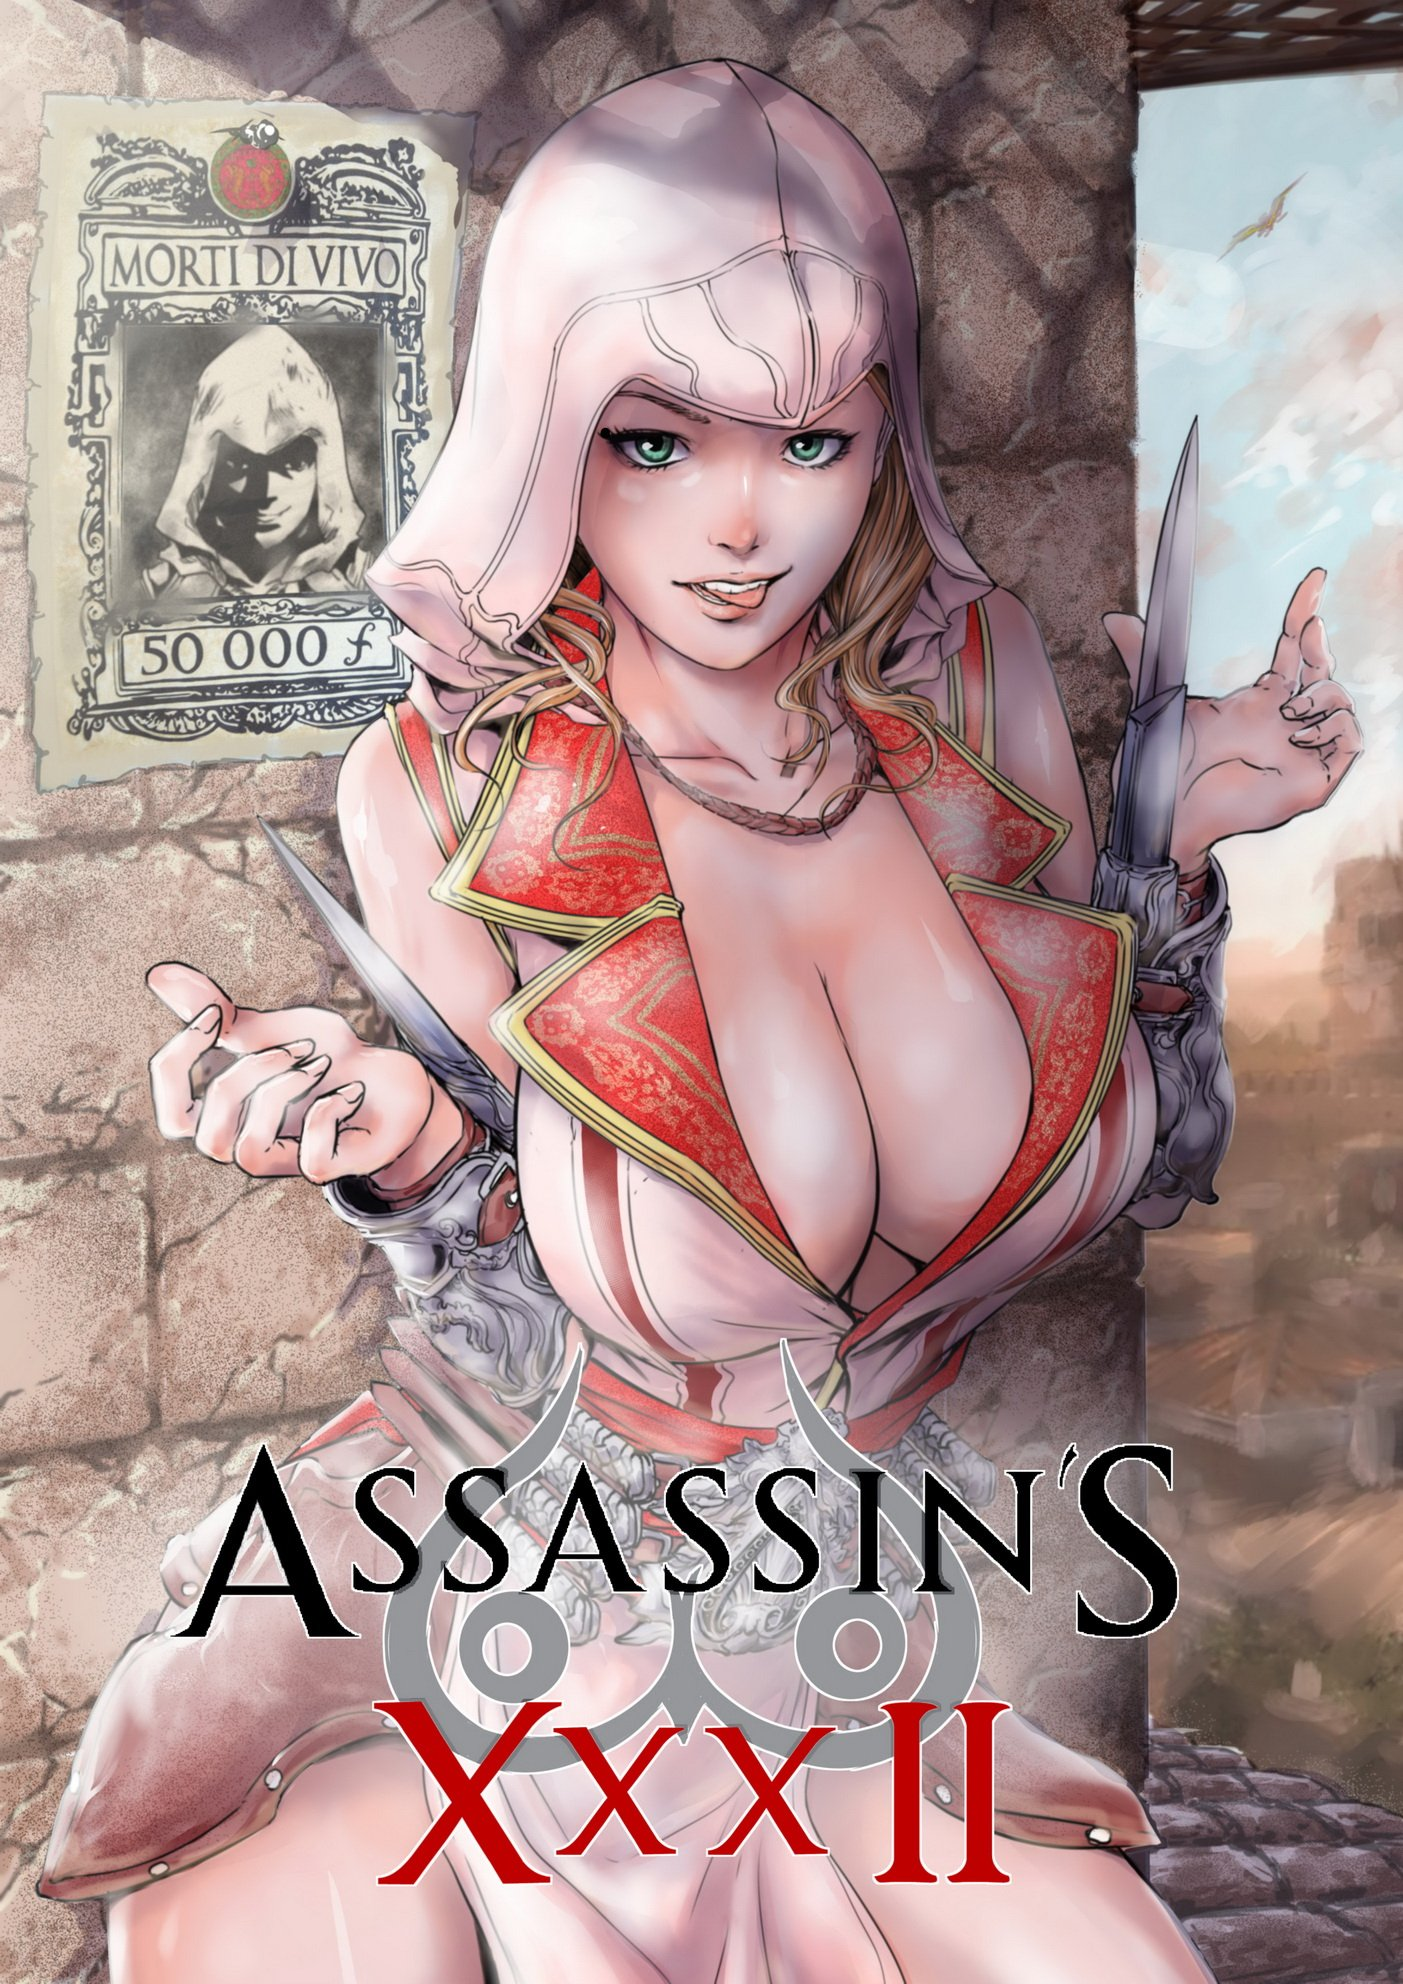 Assassins creed hentai e galleries xxx video